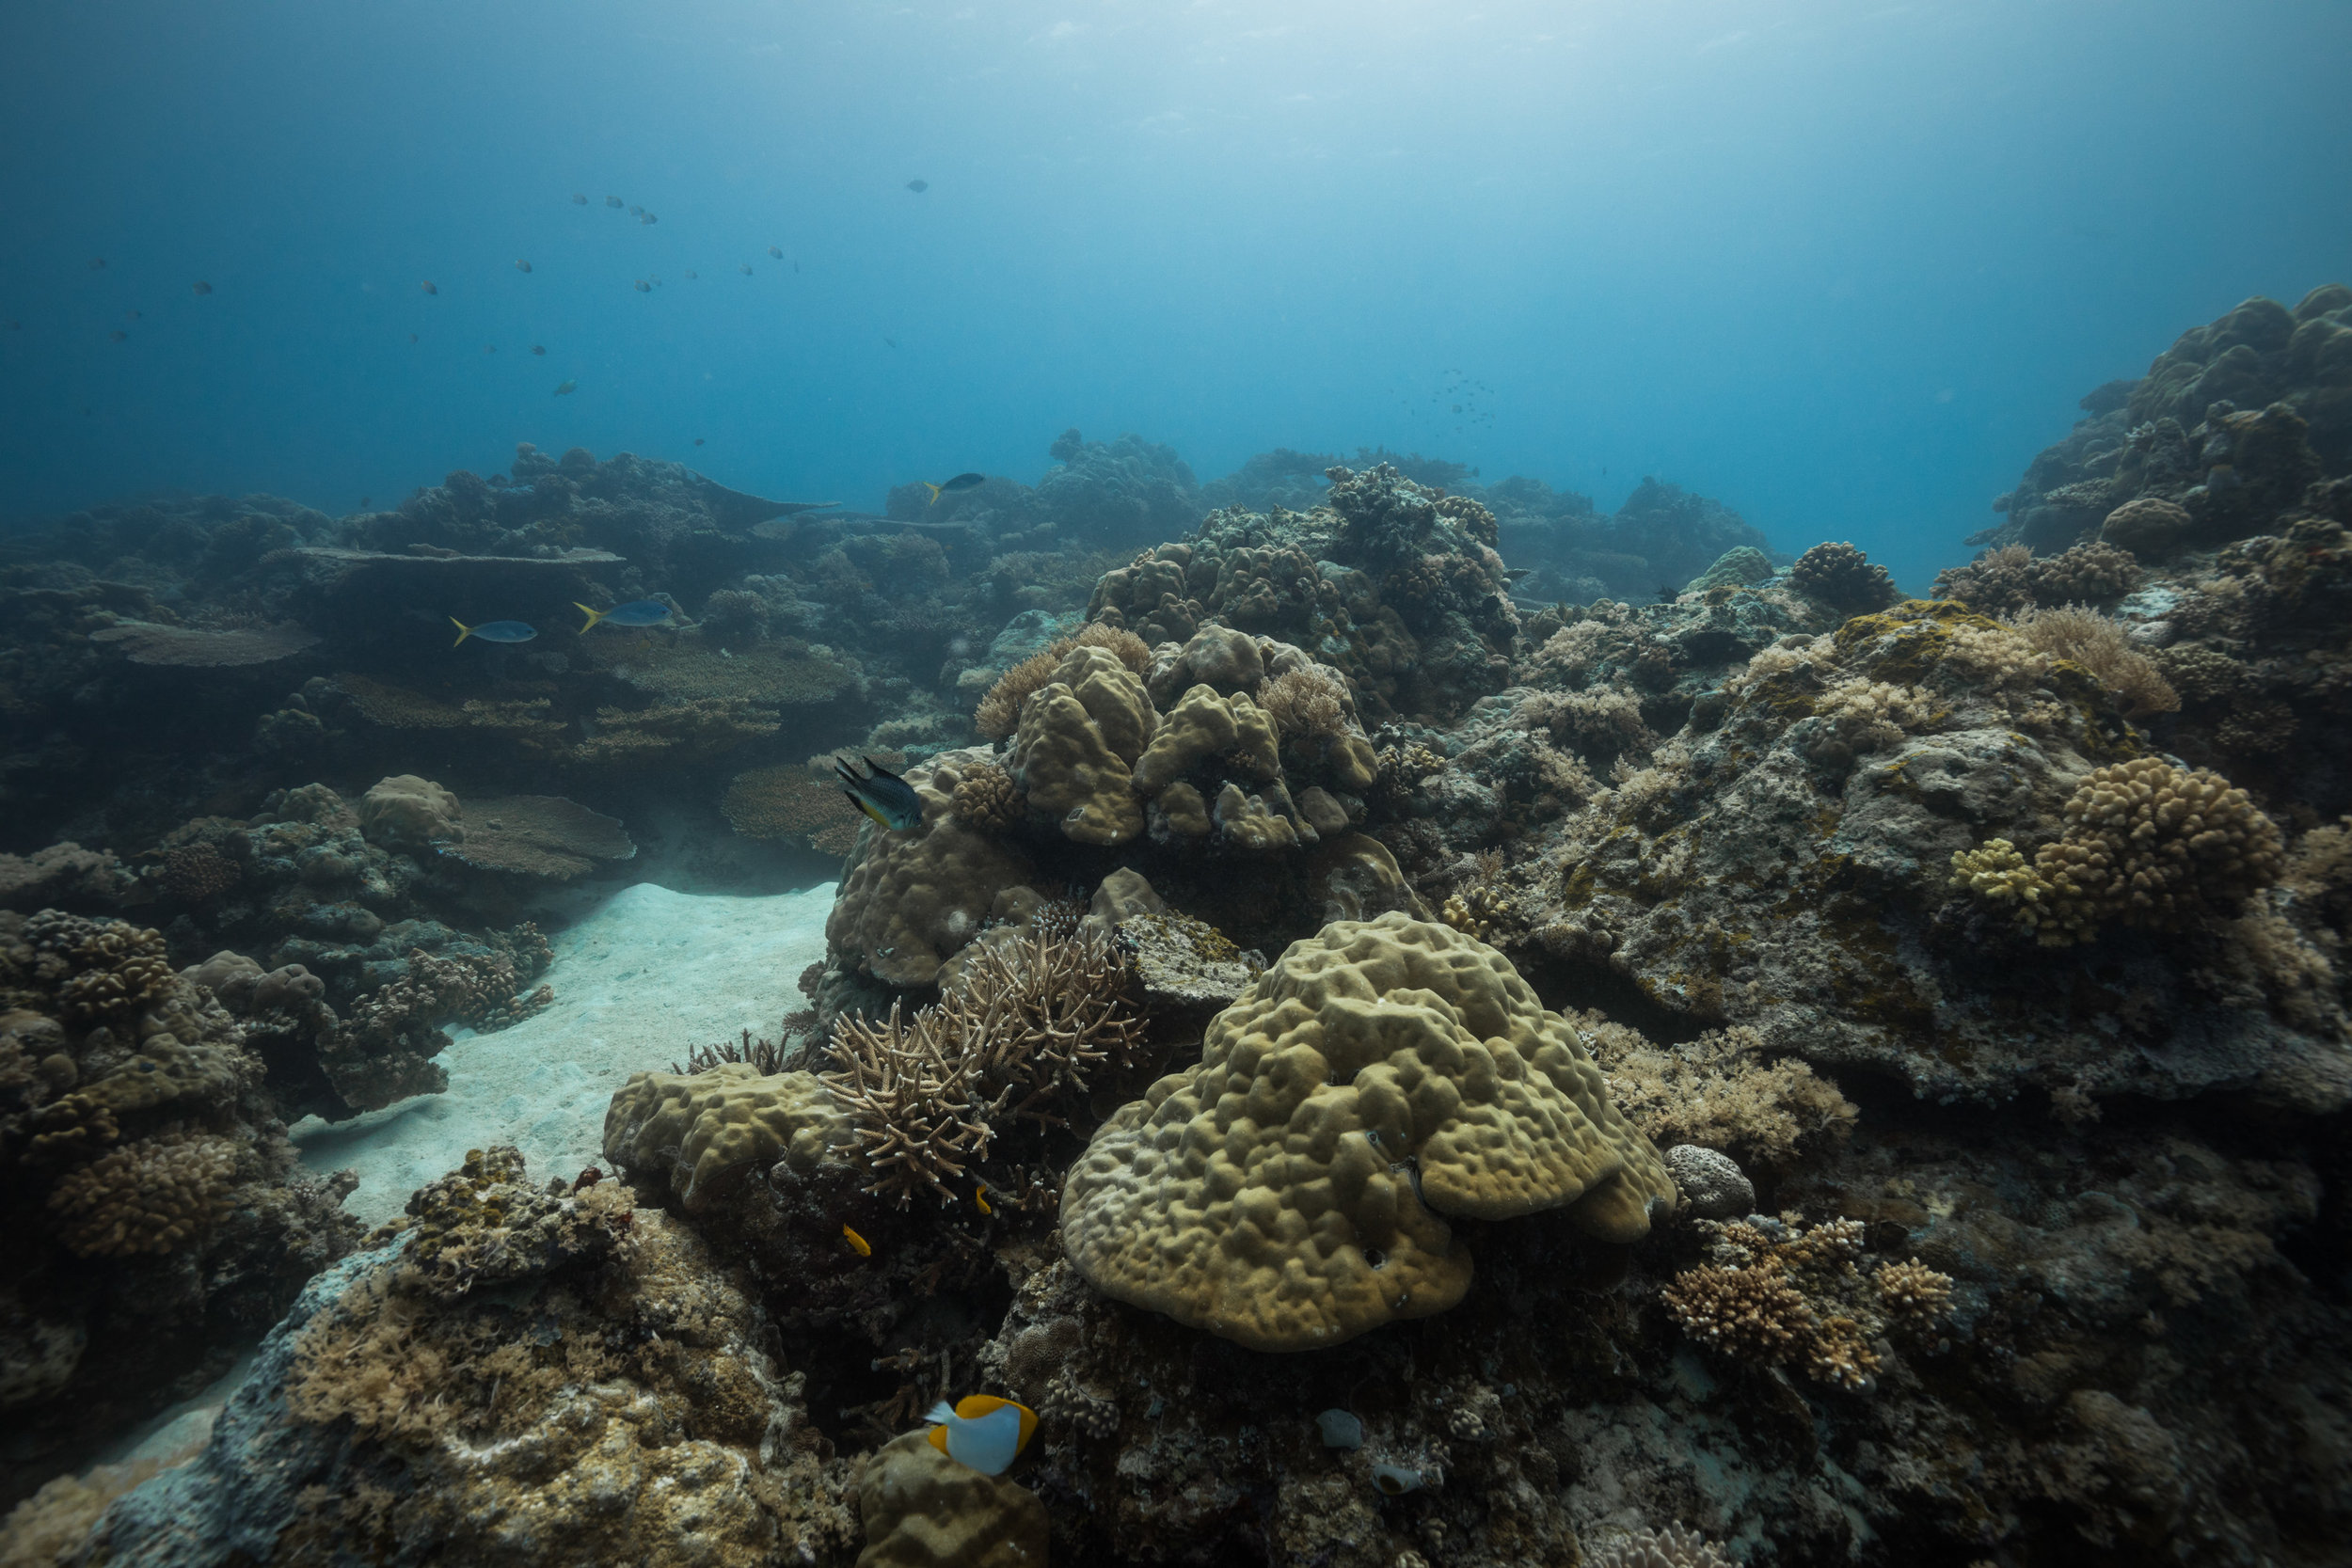 Although we arrived at a time when the visibility was low for what we hoped for filming, we marvelled at the beauty of Palau's underwater world.